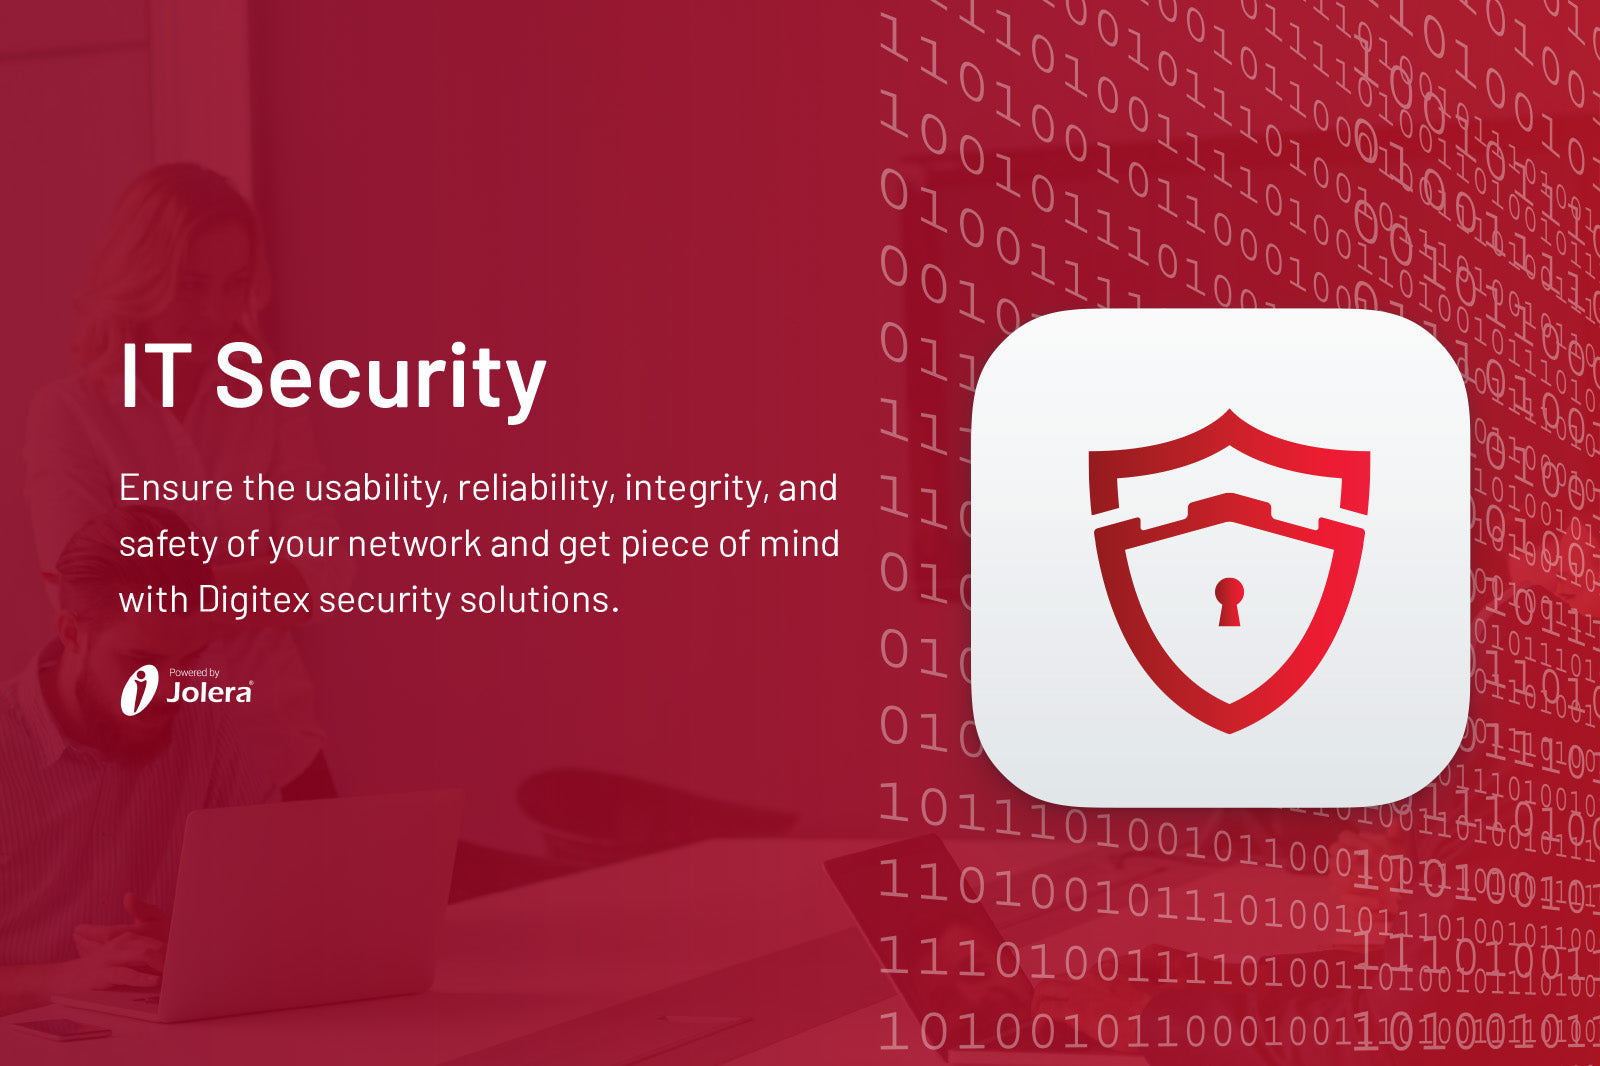 IT Security. Ensure the usability, reliability, integrity, and safety of your network and get piece of mind with Digitex security solutions.